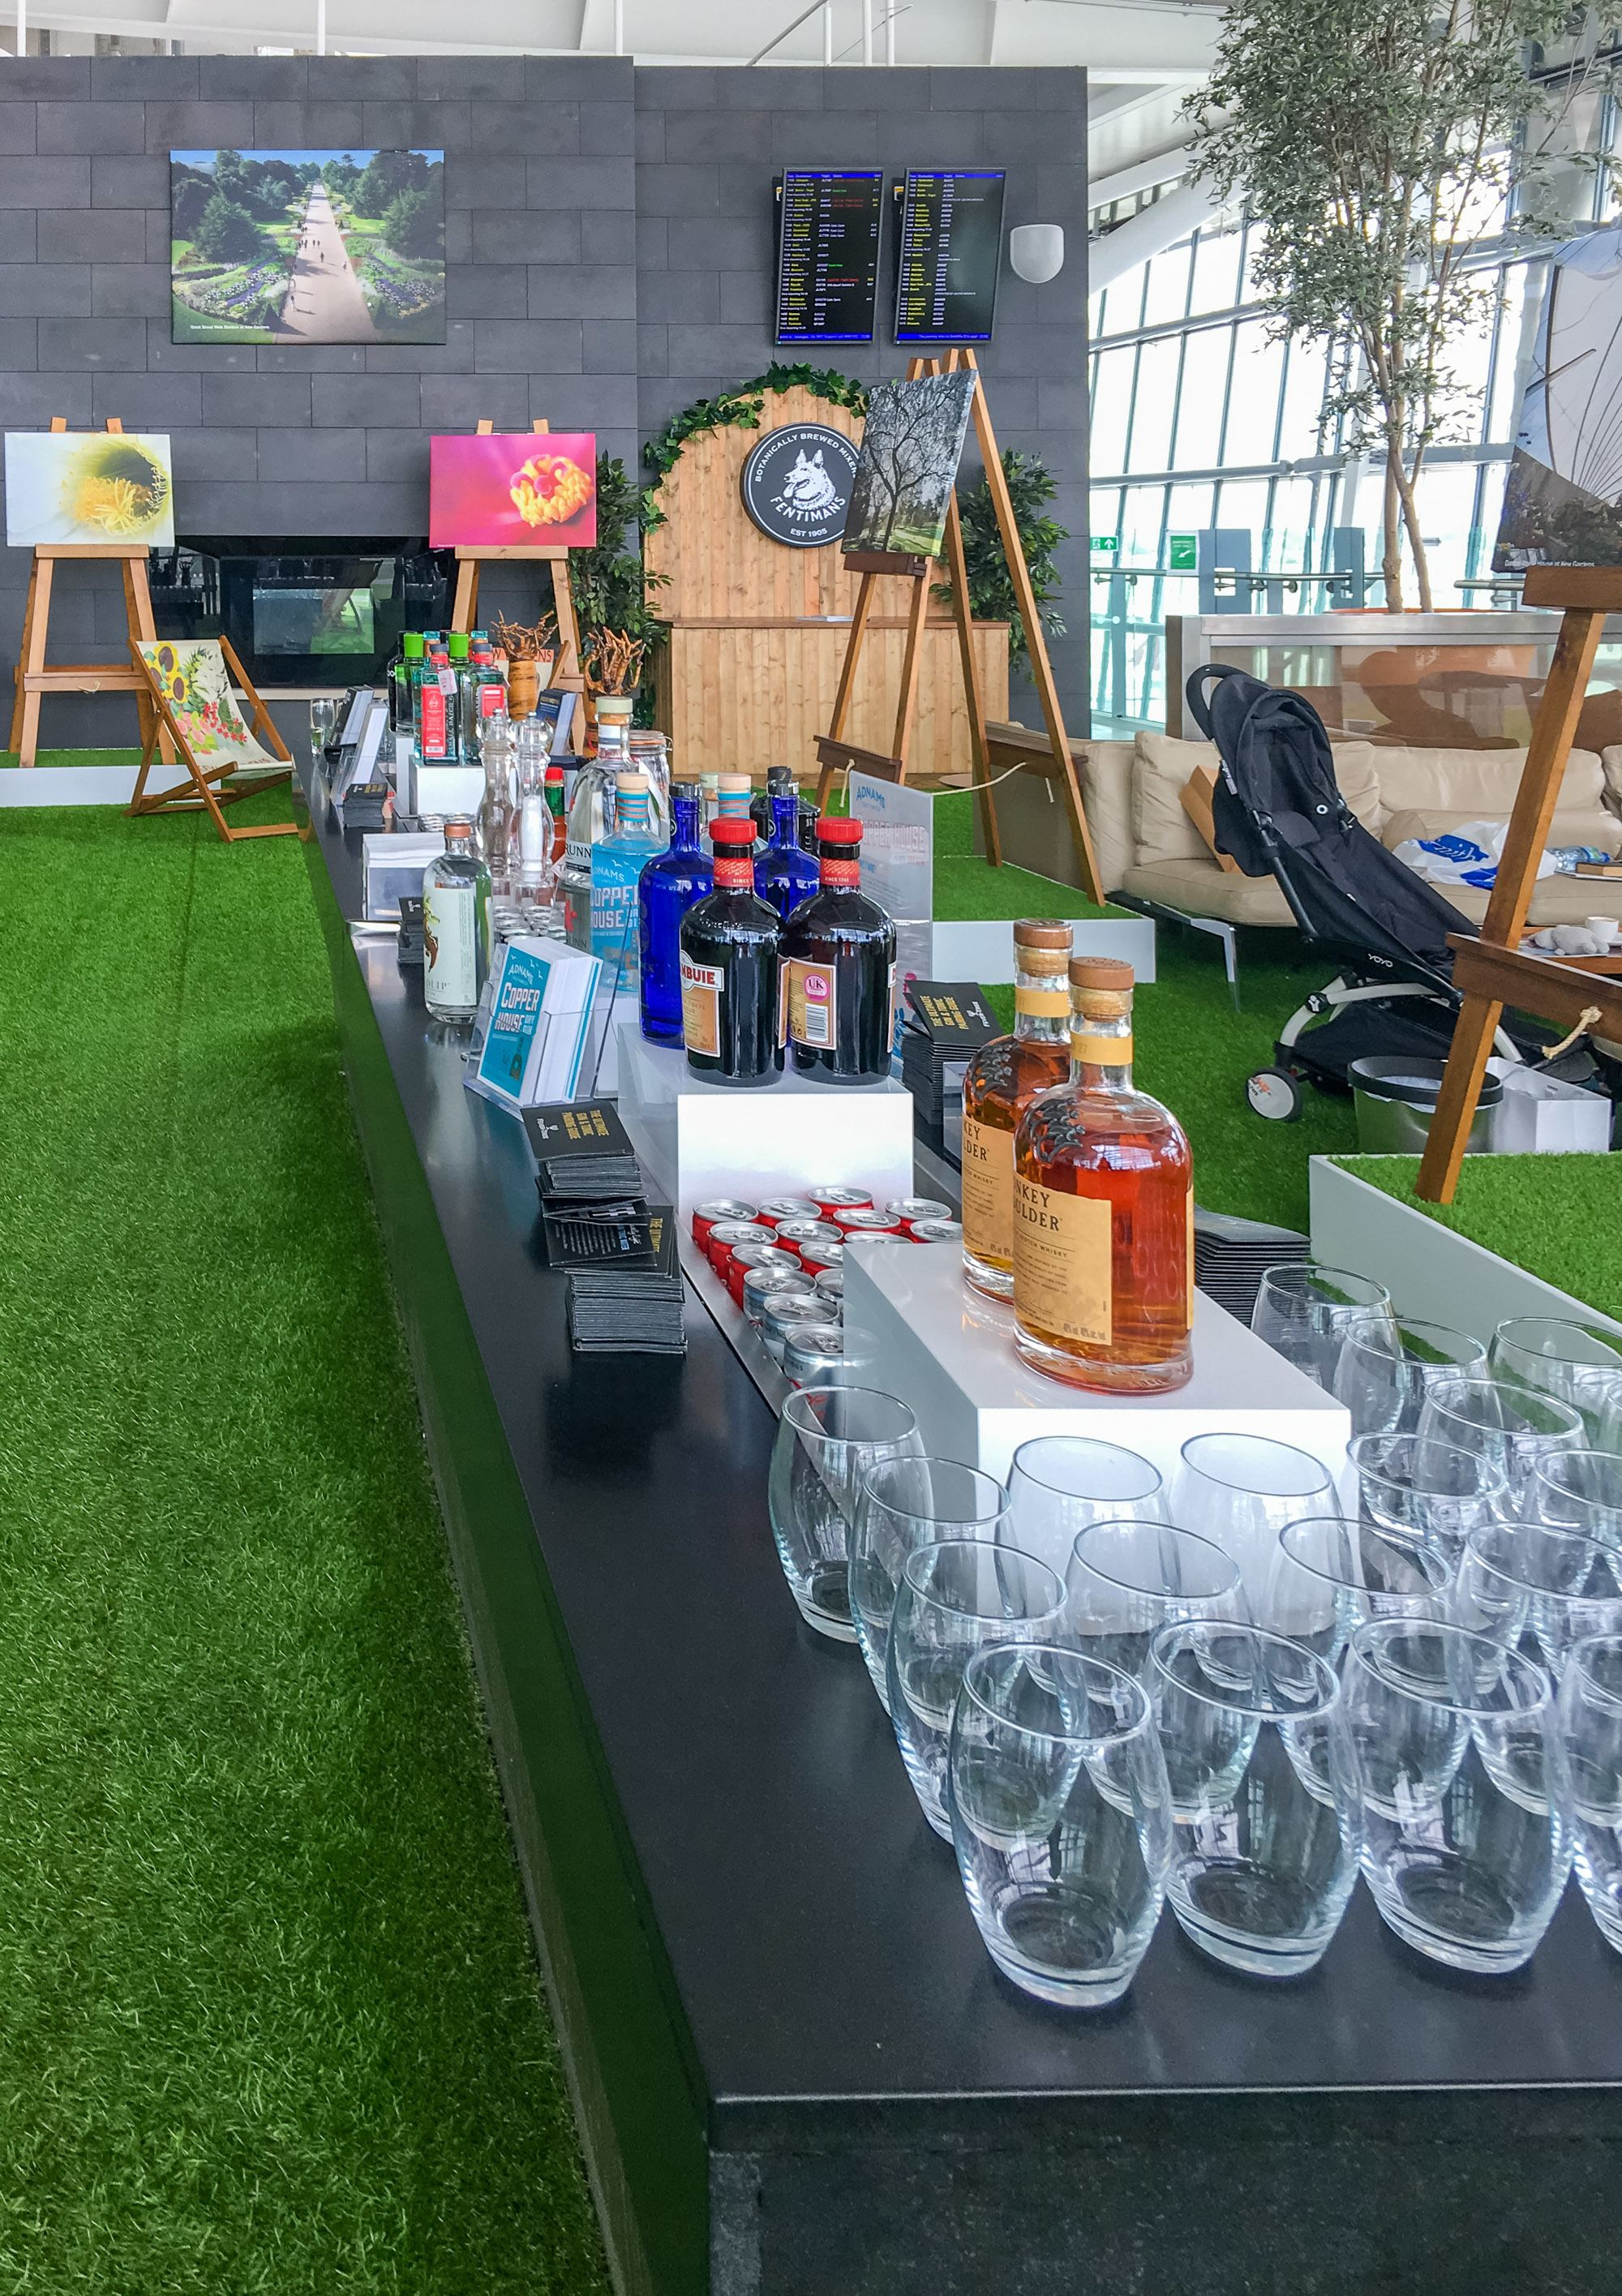 The Kew Garden gin garden at the British Airways Galleries Lounge at London Heathrow Airport.